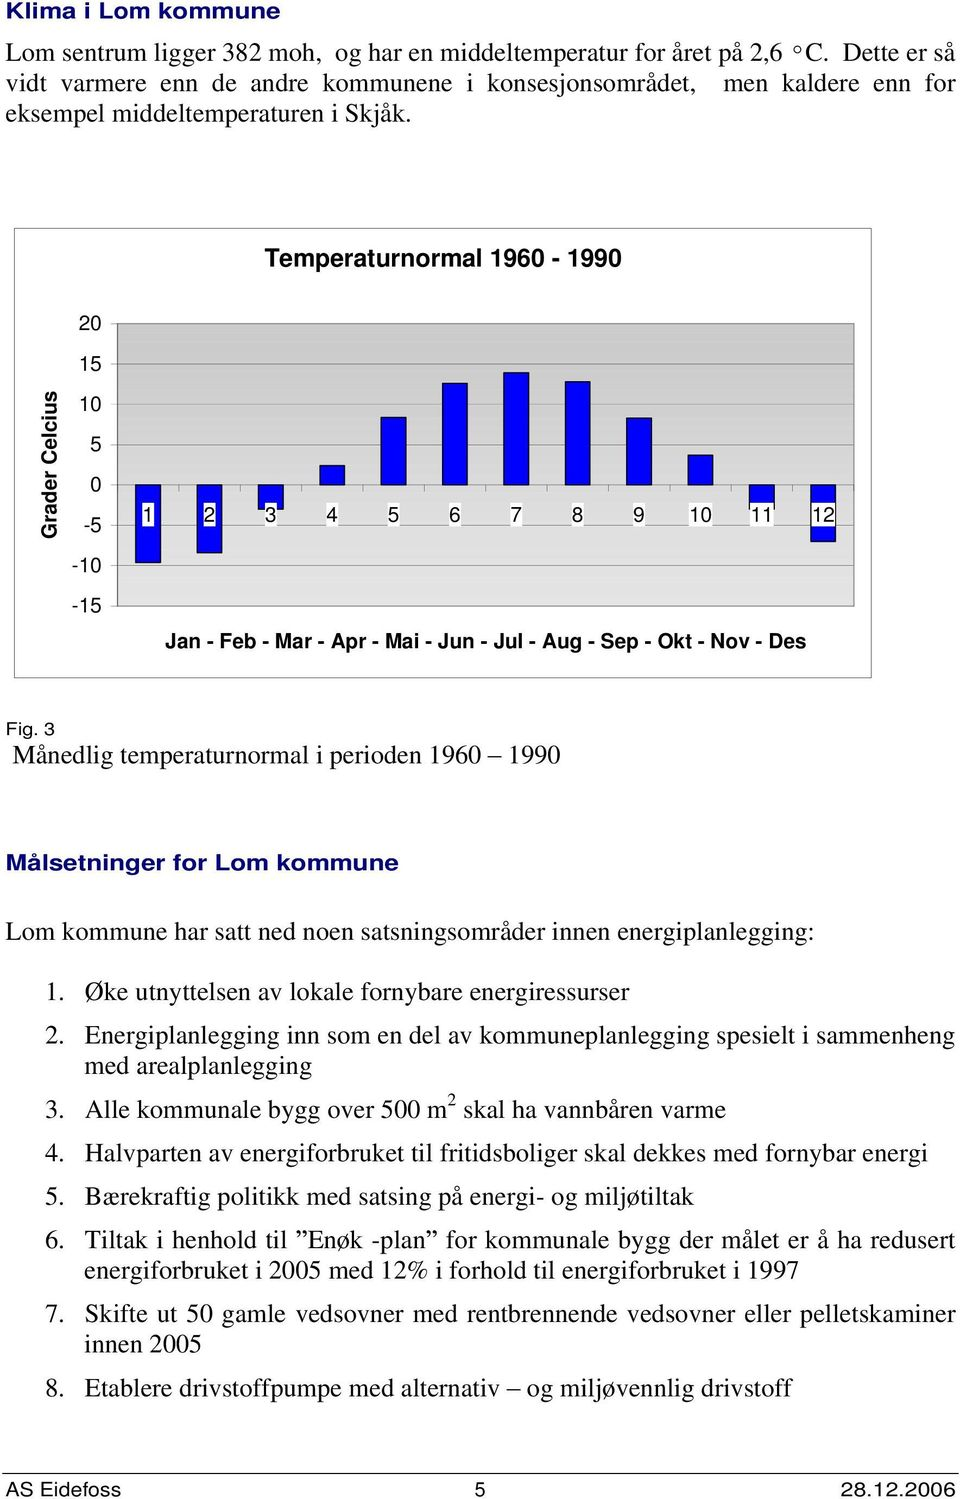 Temperaturnormal 196-199 2 15 Grader Celcius 1 5-5 -1-15 1 2 3 4 5 6 7 8 9 1 11 12 Jan - Feb - Mar - Apr - Mai - Jun - Jul - Aug - Sep - Okt - Nov - Des Fig.